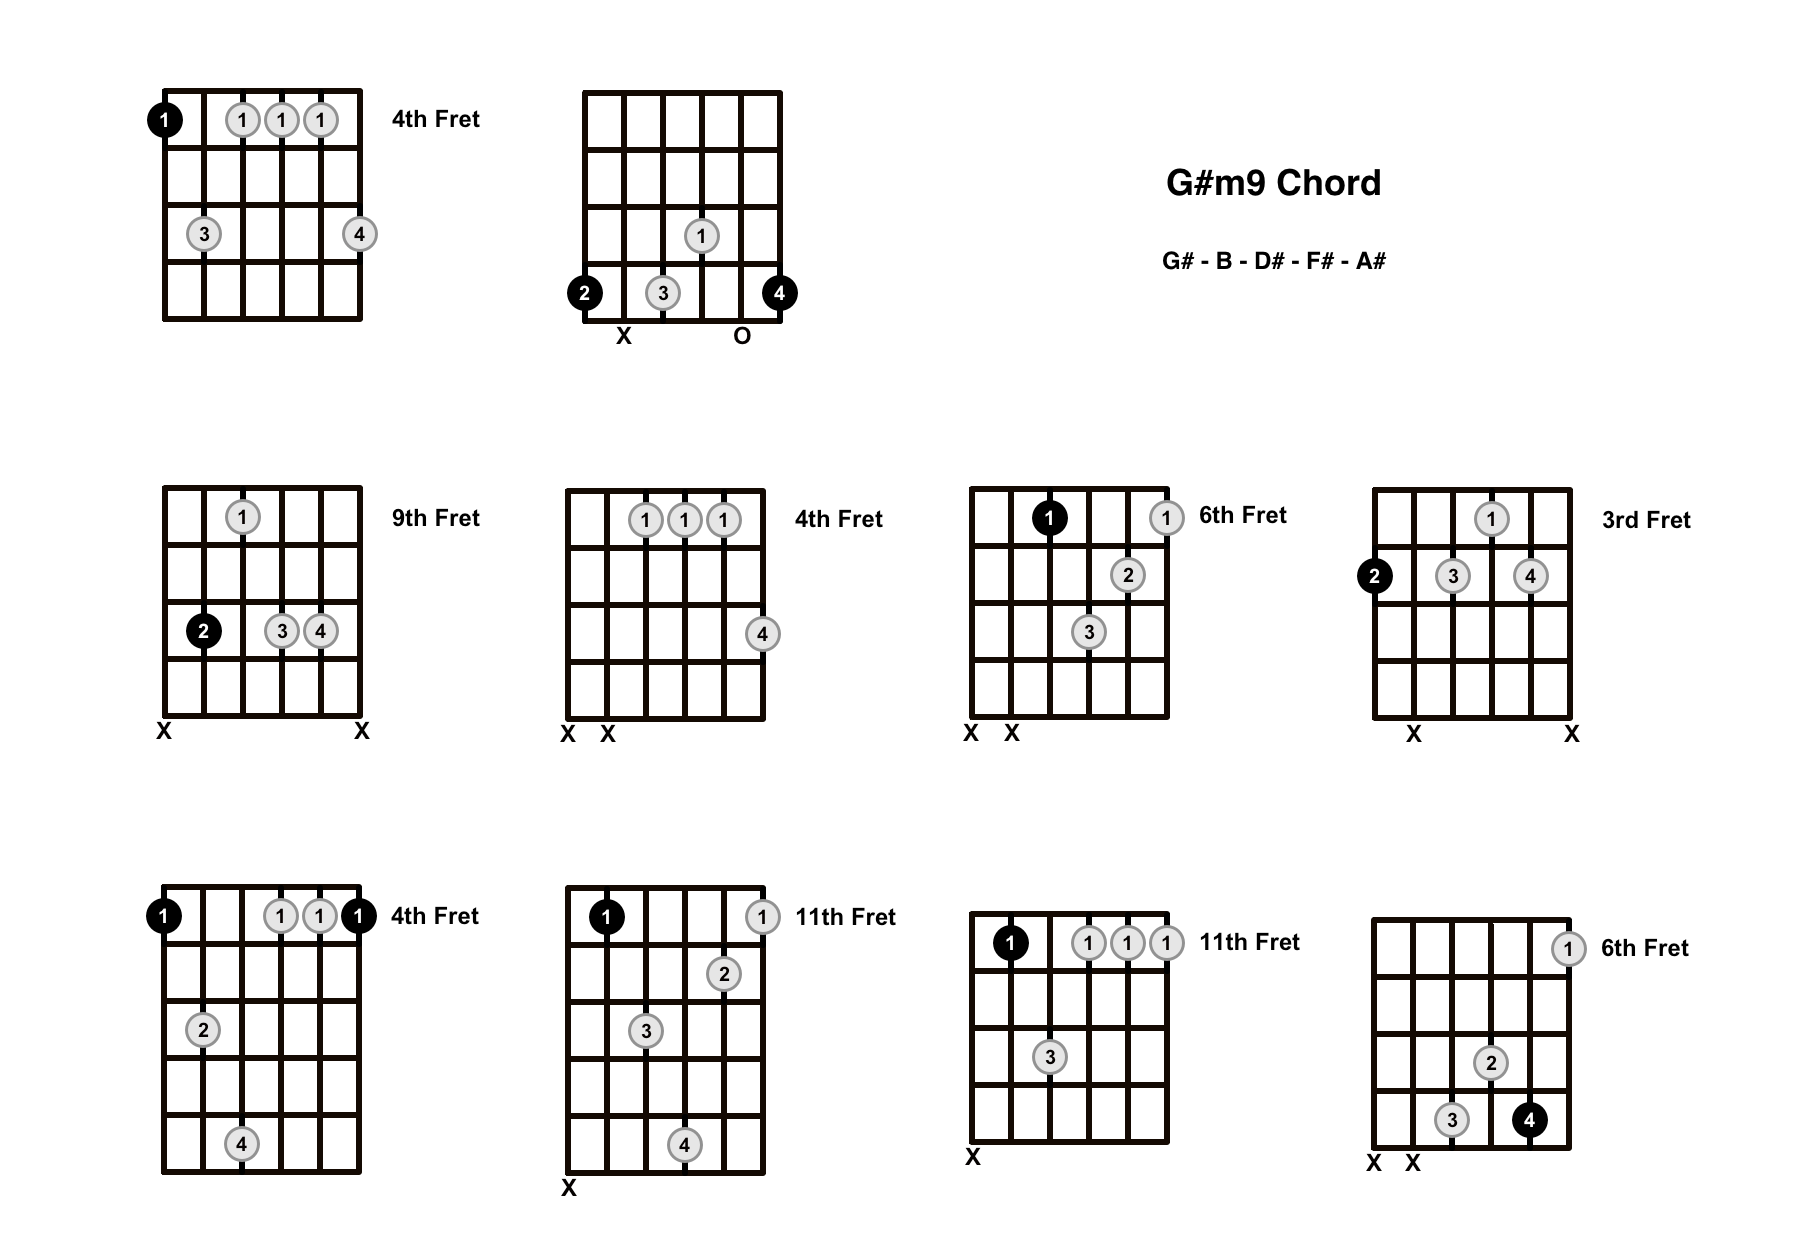 G#m9 Chord On The Guitar (G Sharp Minor 9) – Diagrams, Finger Positions and Theory